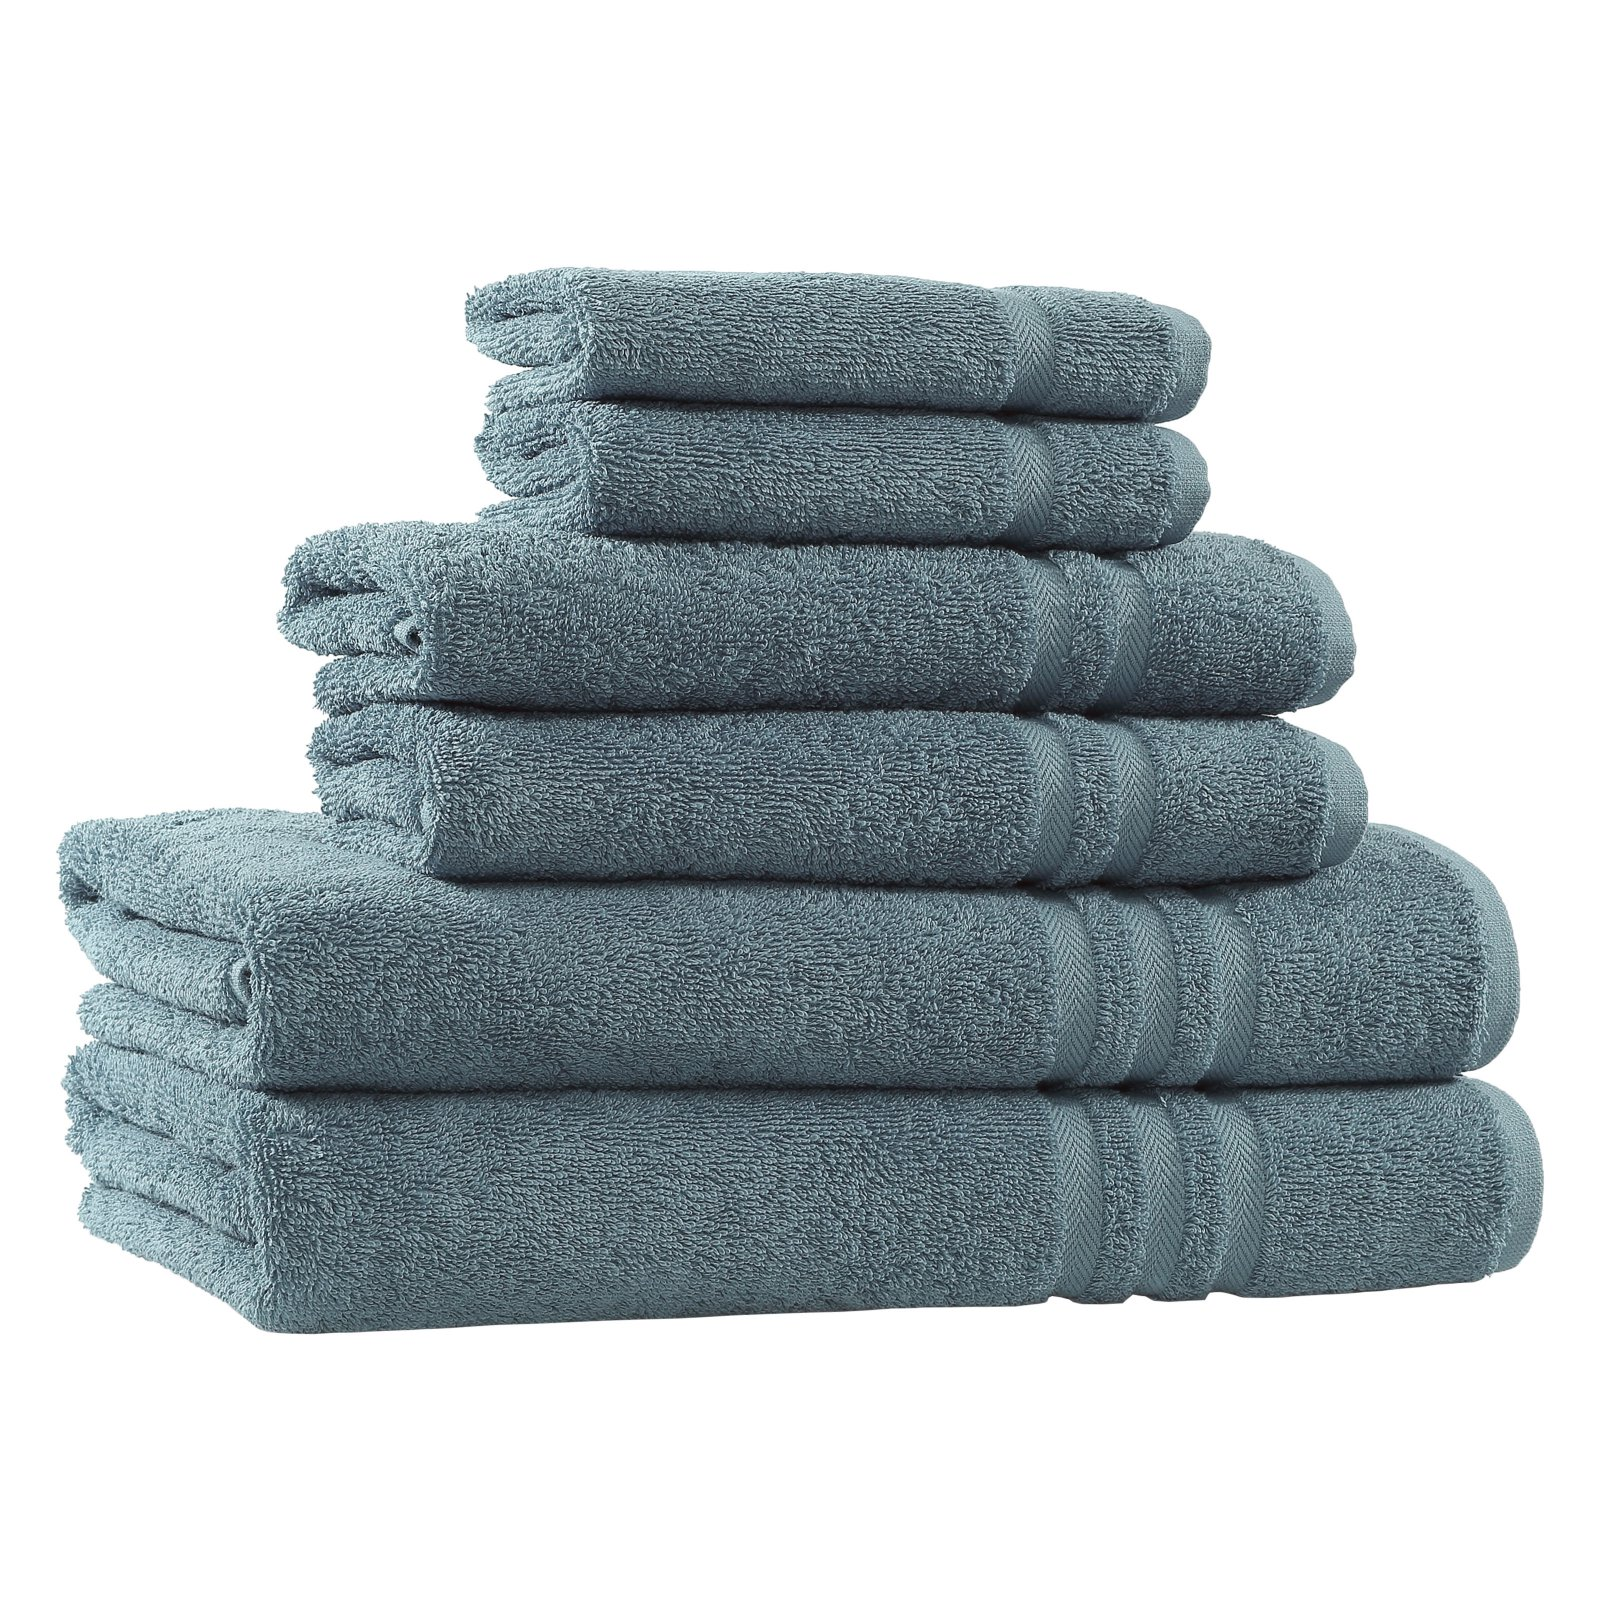 Denzi 6-Piece Turkish Cotton Towel Set